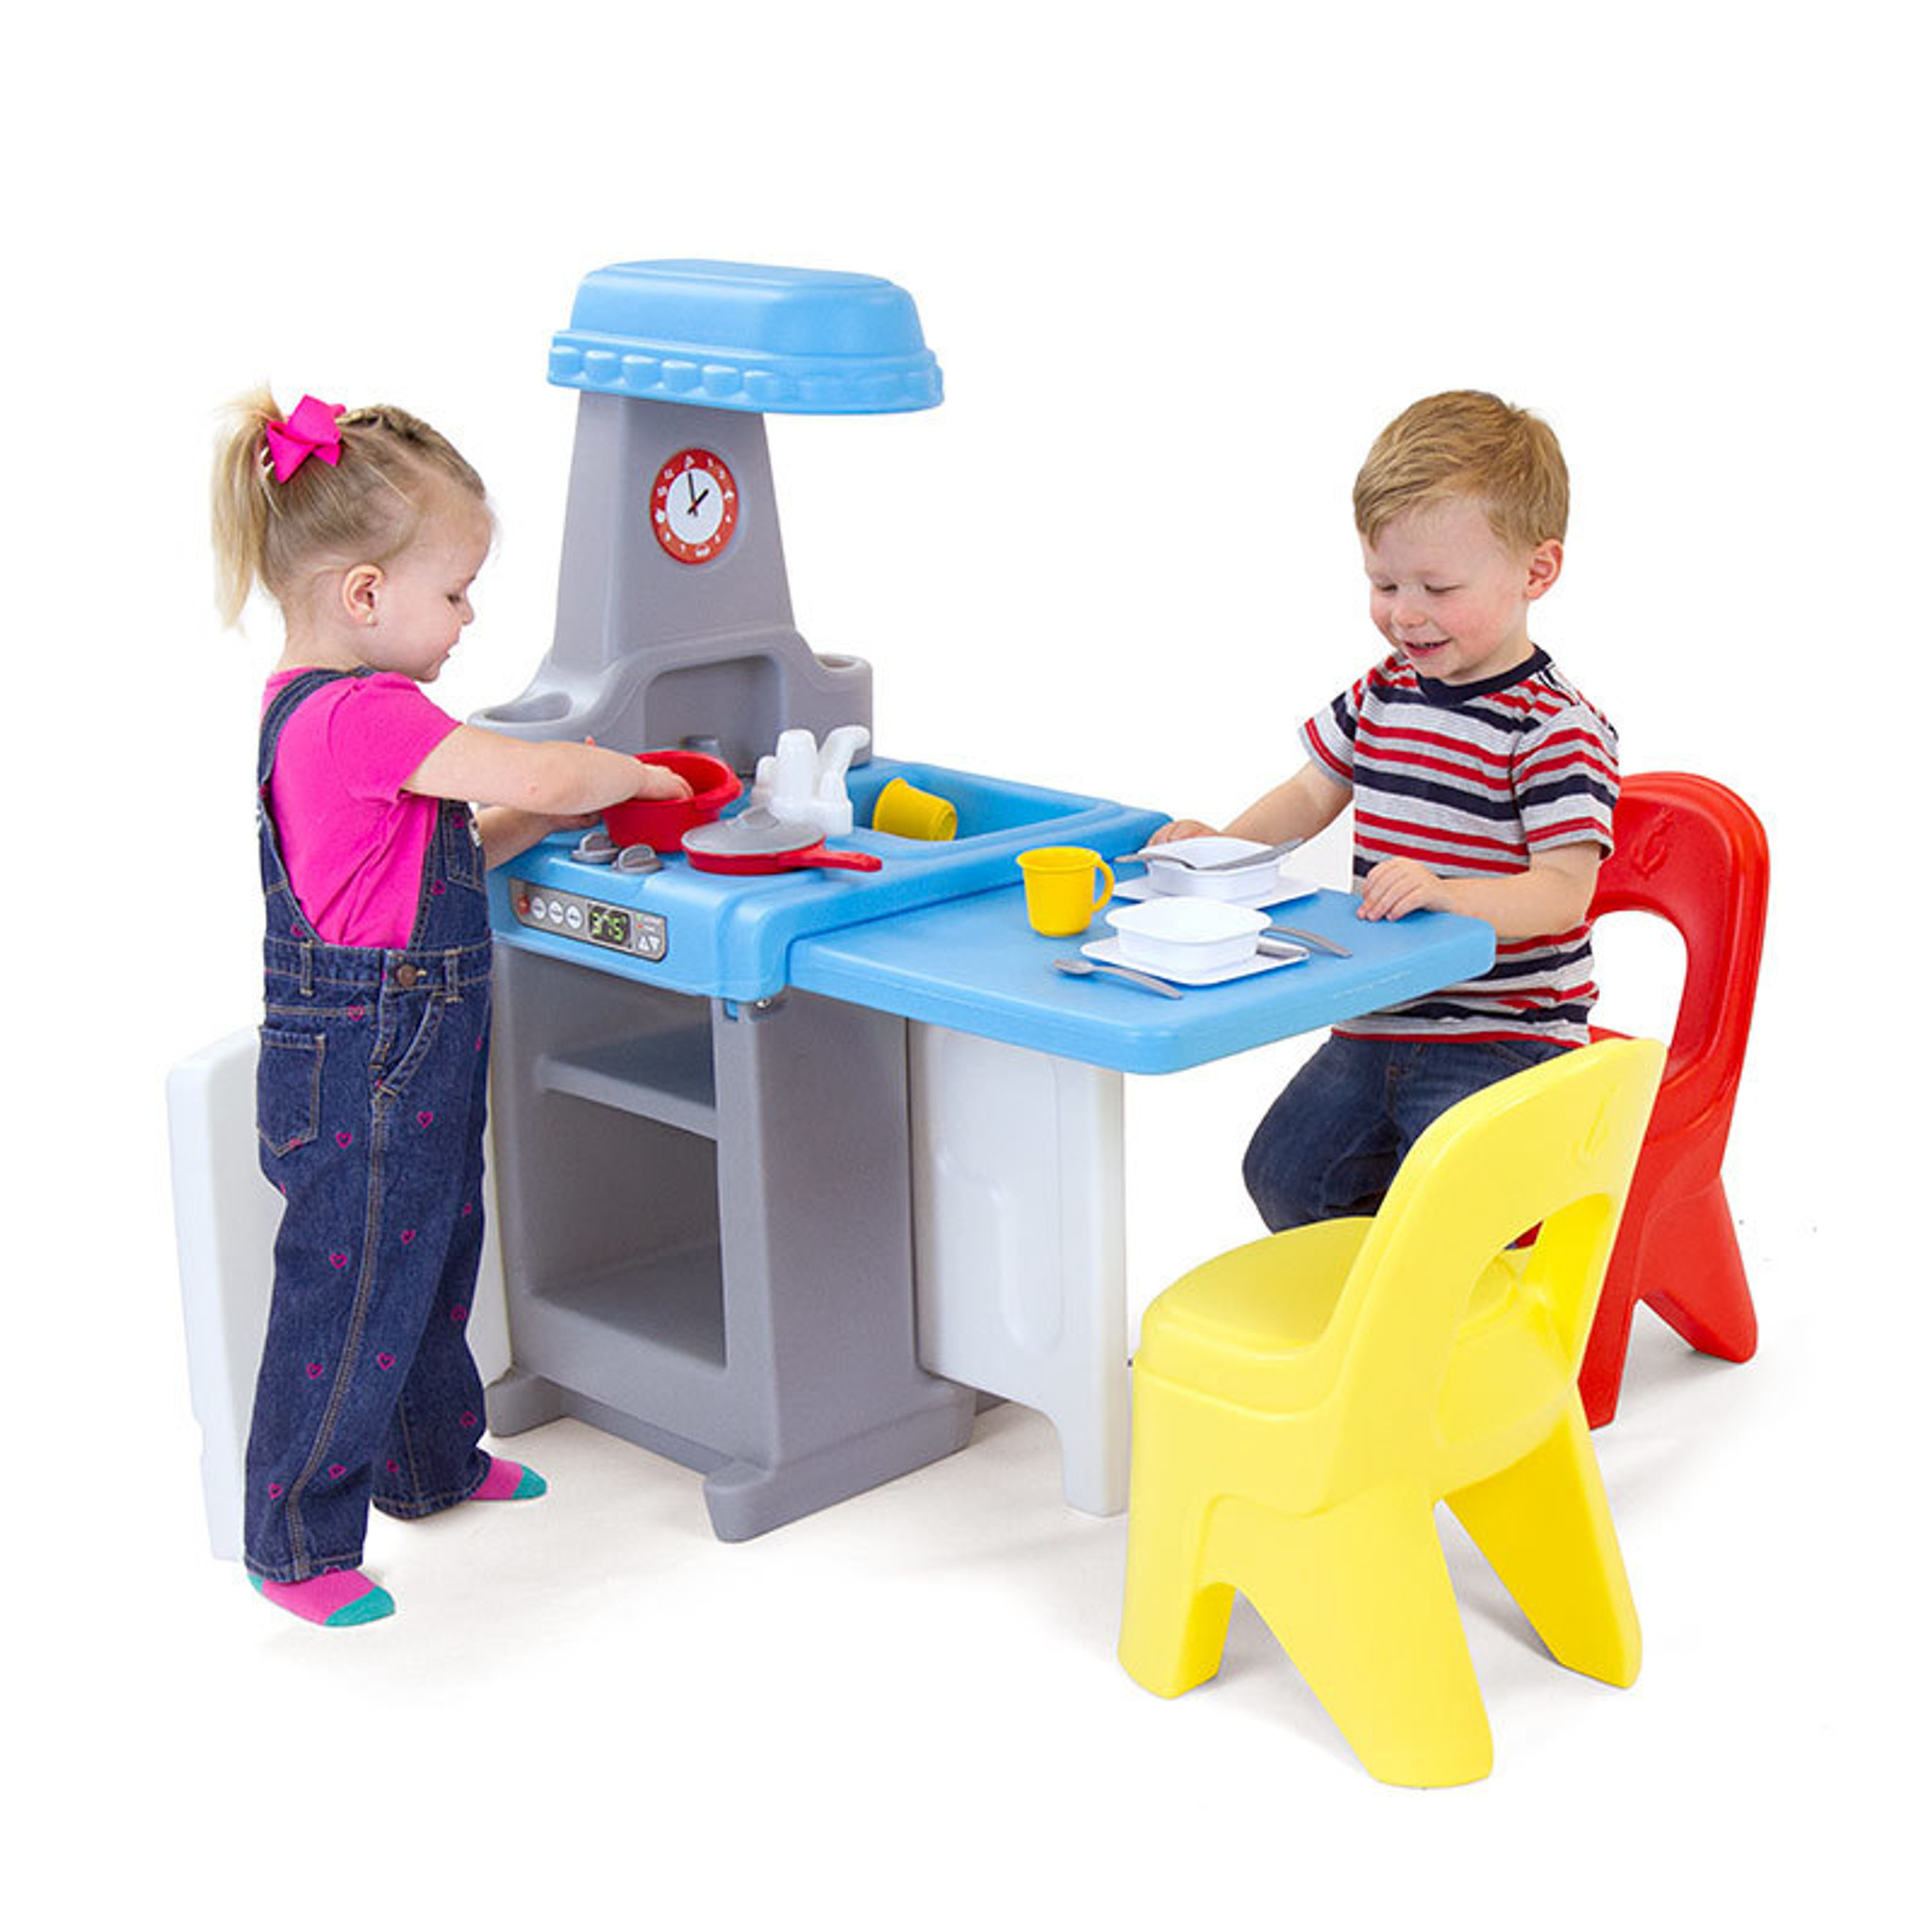 simplay3 play around kitchen and activity center with simplay3 play around chairs sold separately - Kids Kitchen